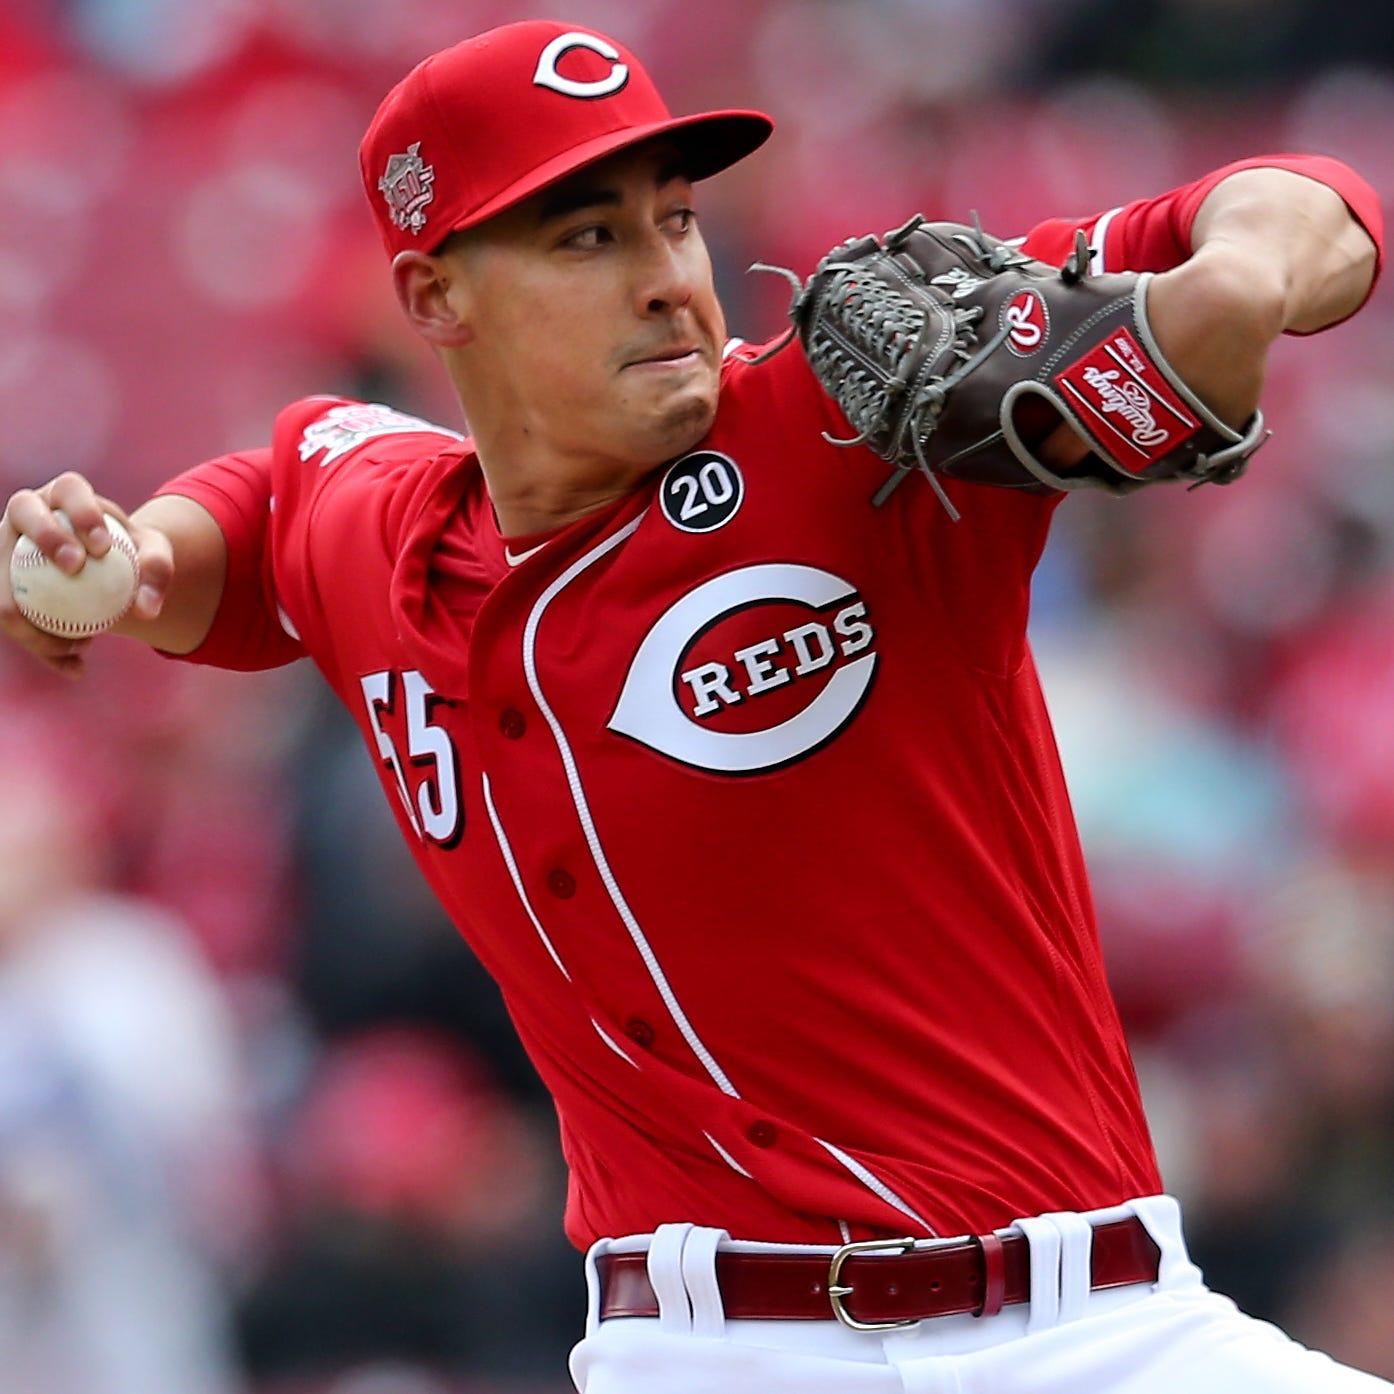 Robert Stephenson, pitching well out of Cincinnati Reds' bullpen, lets go of expectations